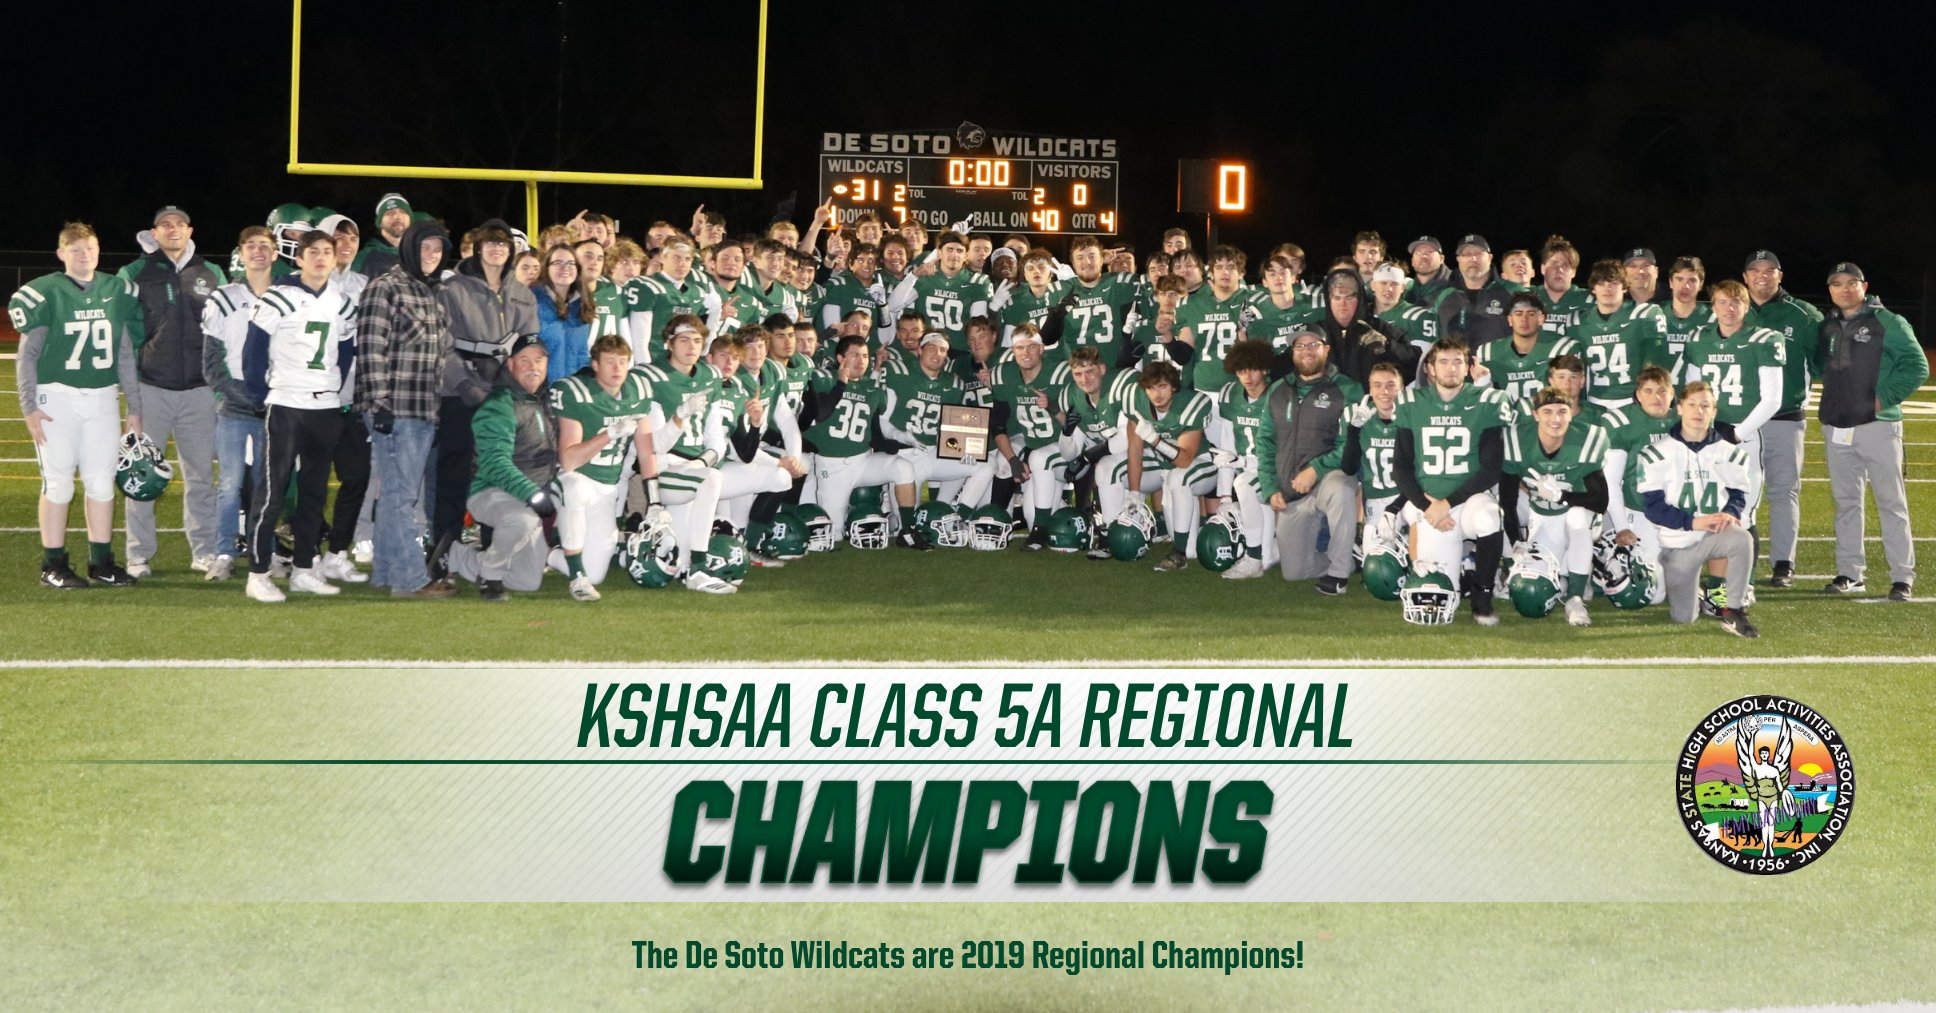 Wildcats Claim a Regional Championship with a 31-0 Win over Shawnee Heights